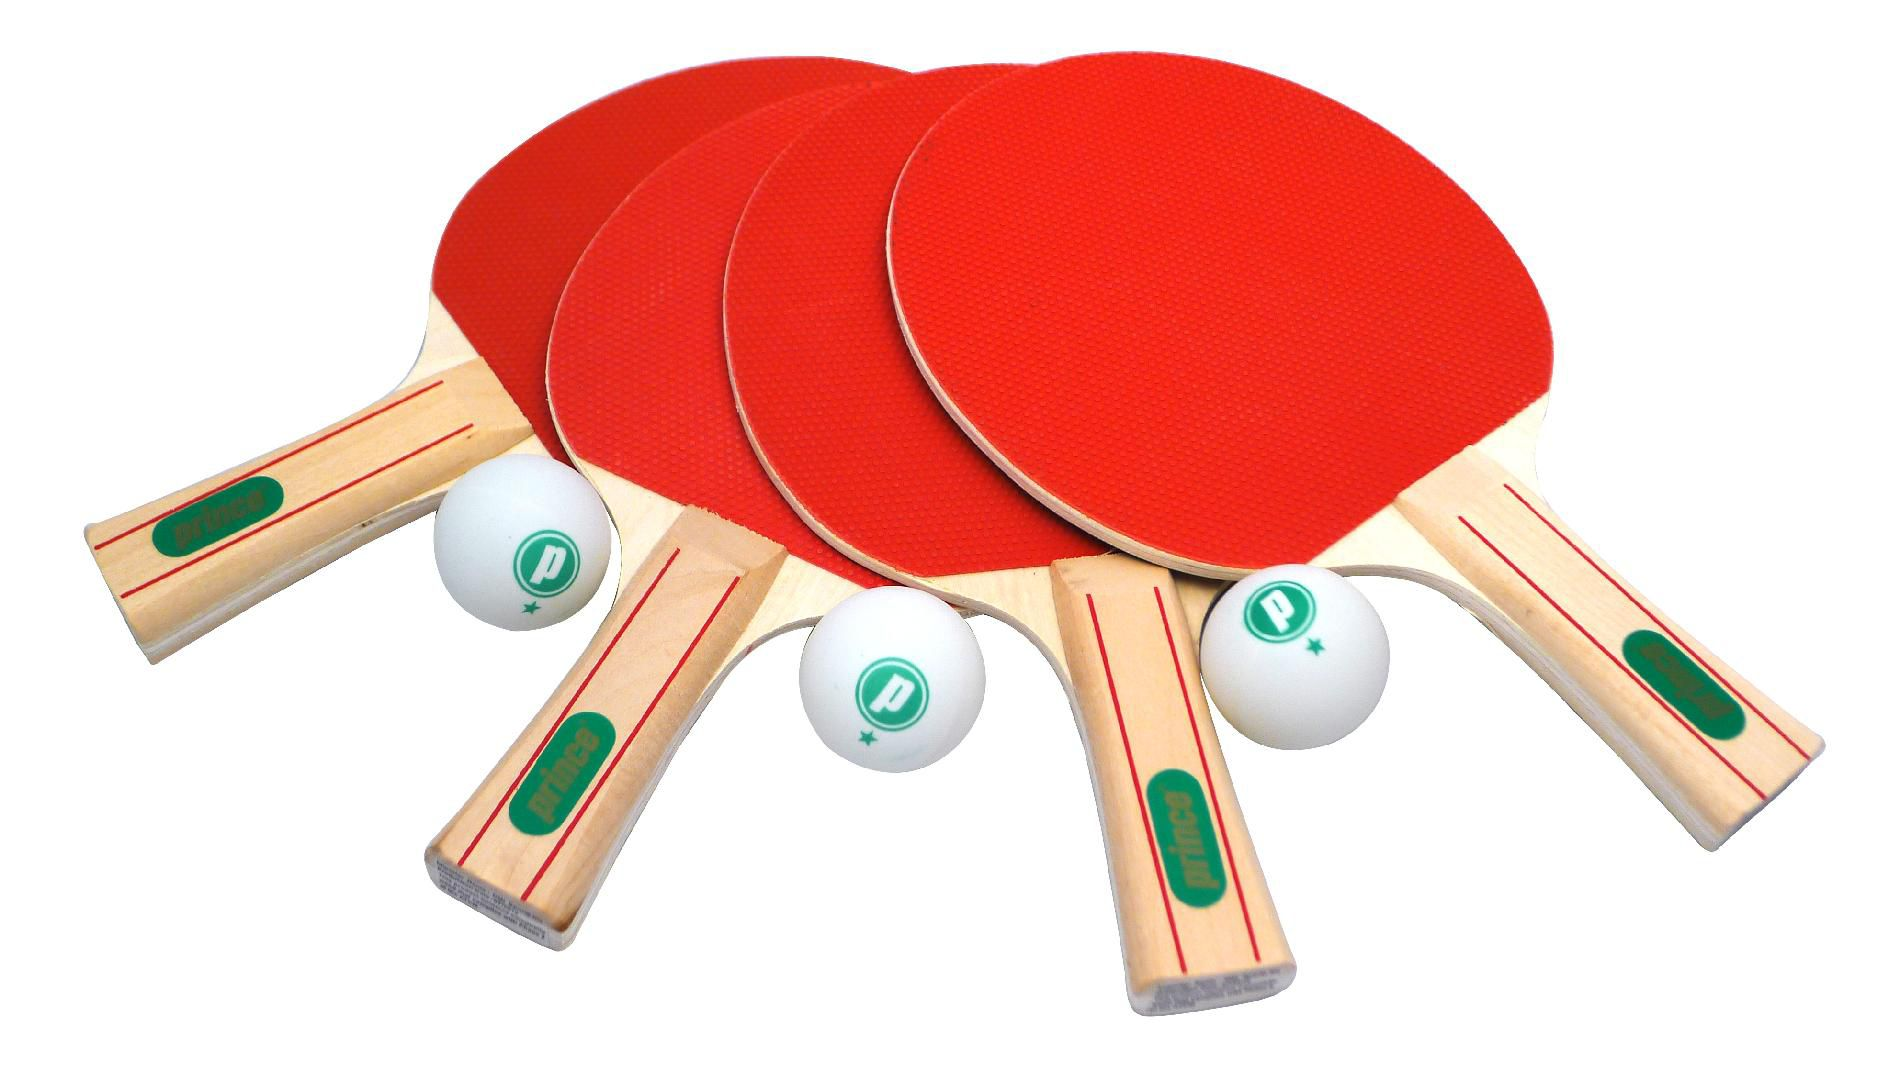 Prince Table Tennis Set - 4 Player